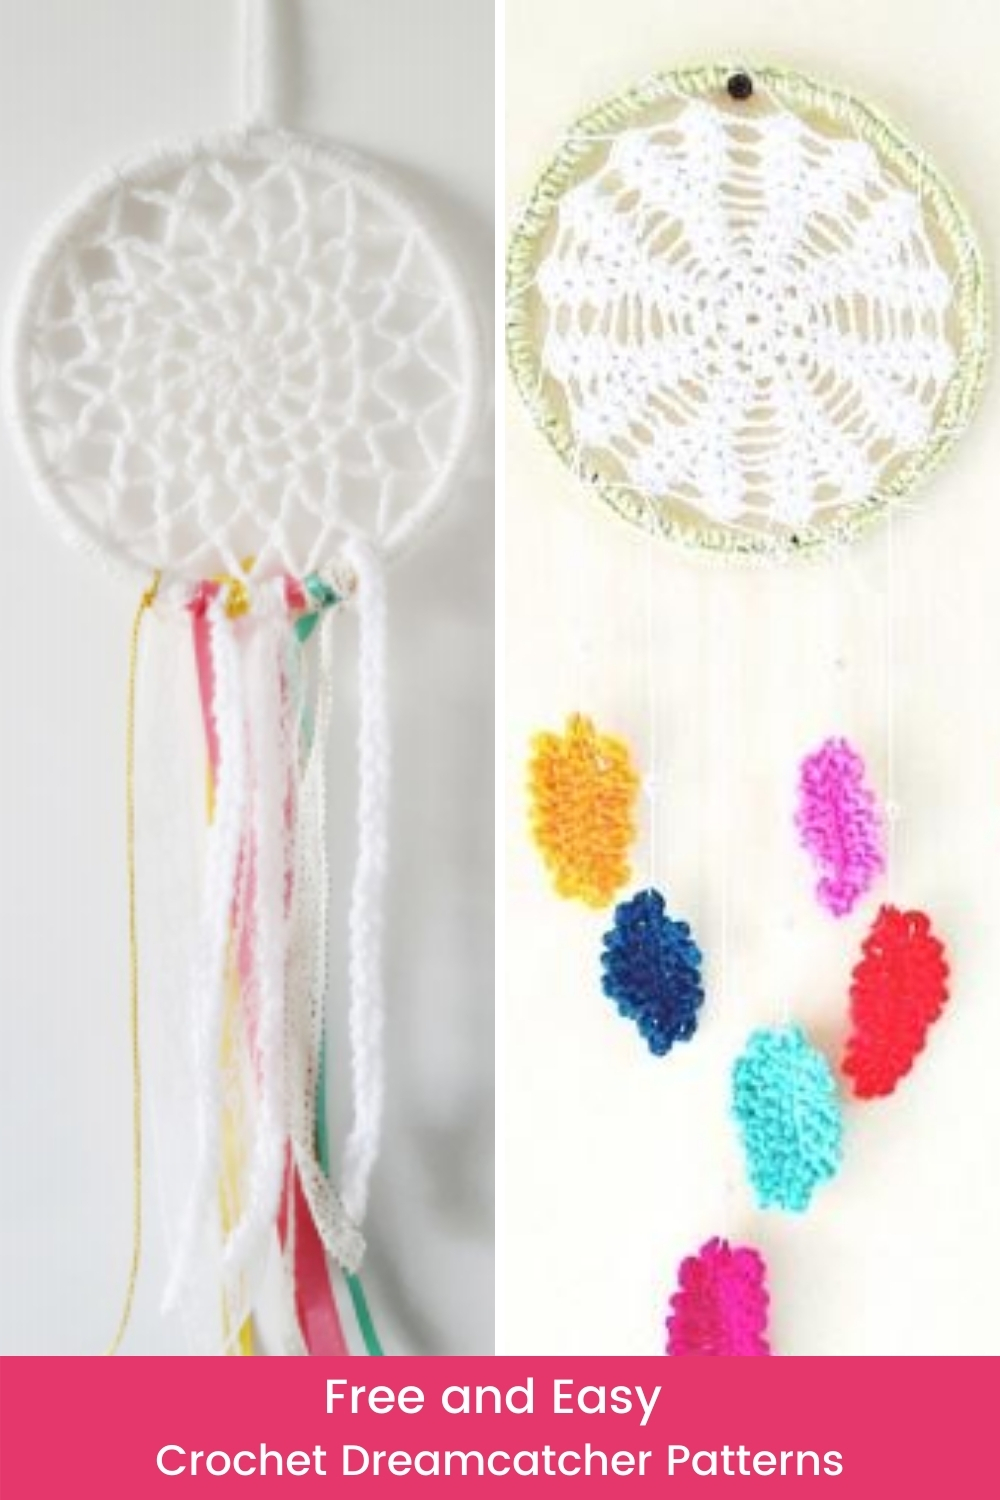 7 Free And Easy Crochet Dreamcatcher Patterns Wildflowers And Wanderlust